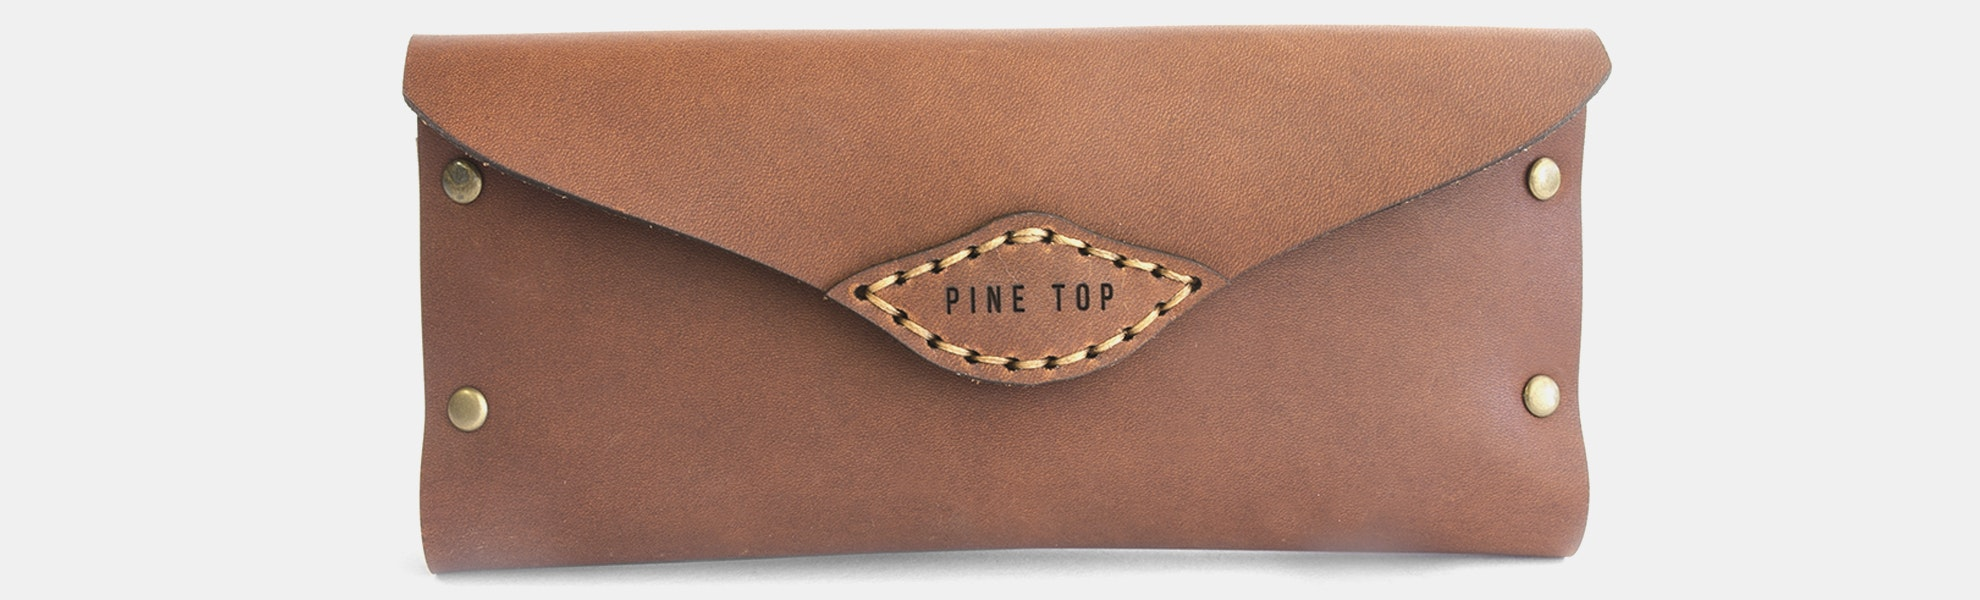 Pine Top Glasses Case